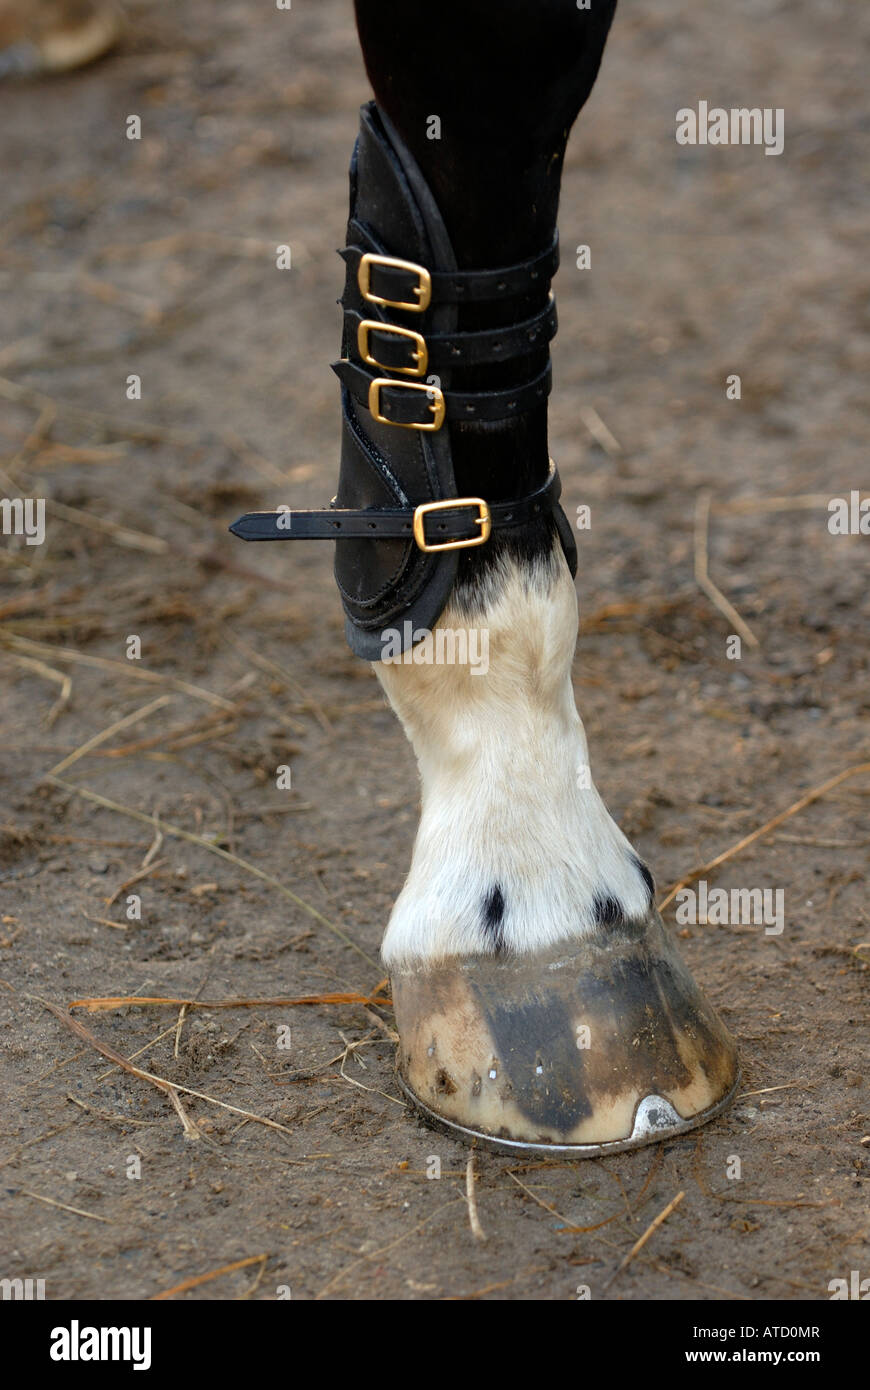 a horse pony wearing tendon boots socks gaiters to protect and support lower legs from injuries or injury while - Stock Image